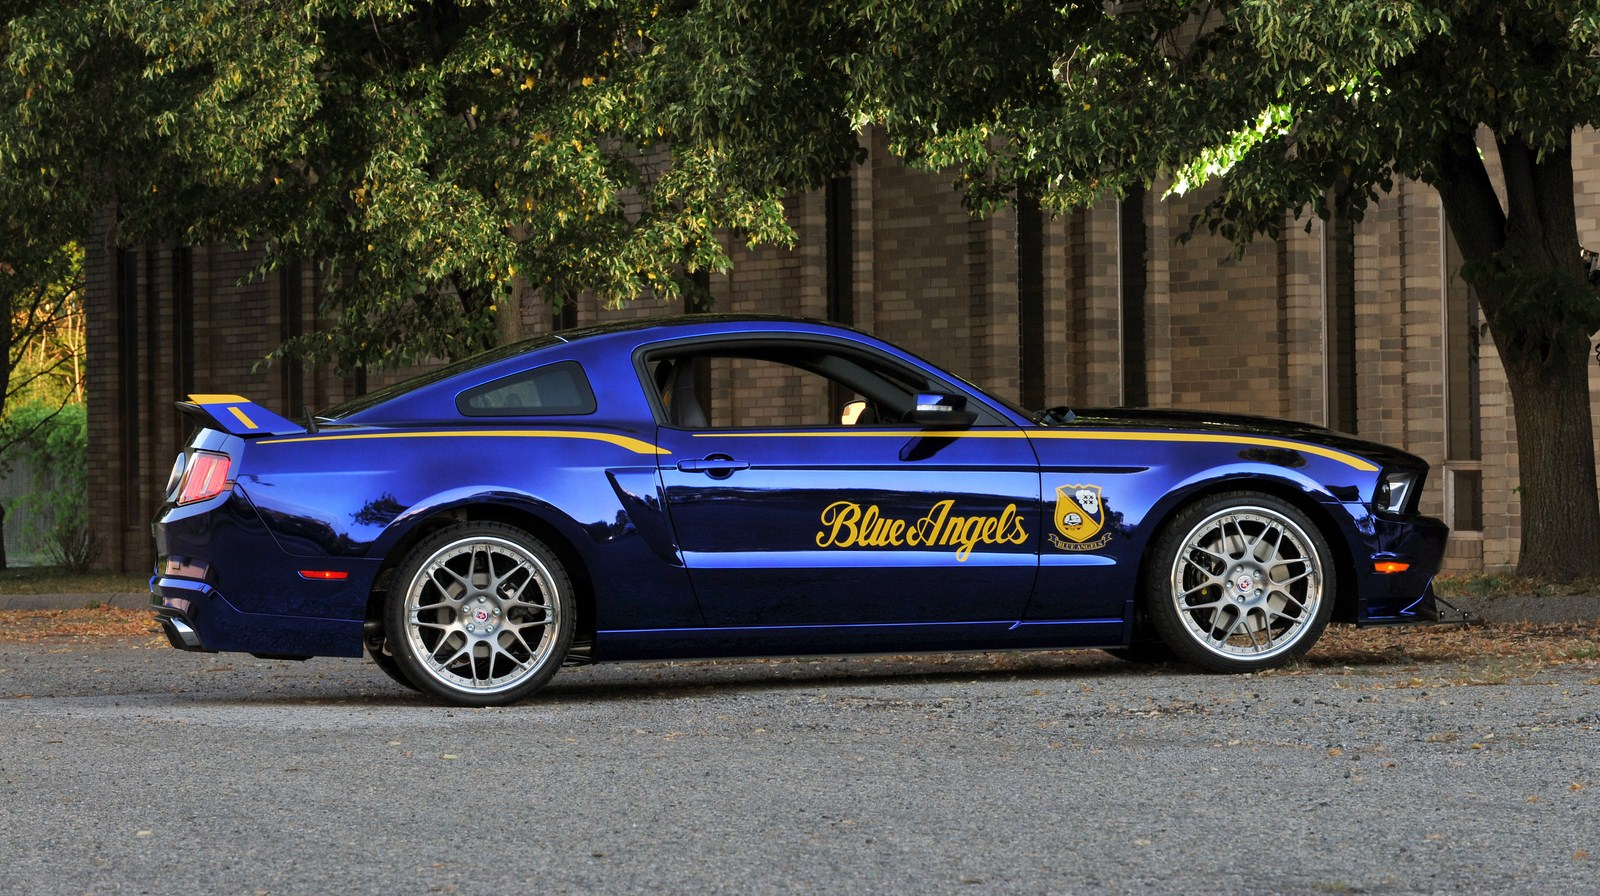 blue angels edition 2012 ford mustang gt garage car. Black Bedroom Furniture Sets. Home Design Ideas